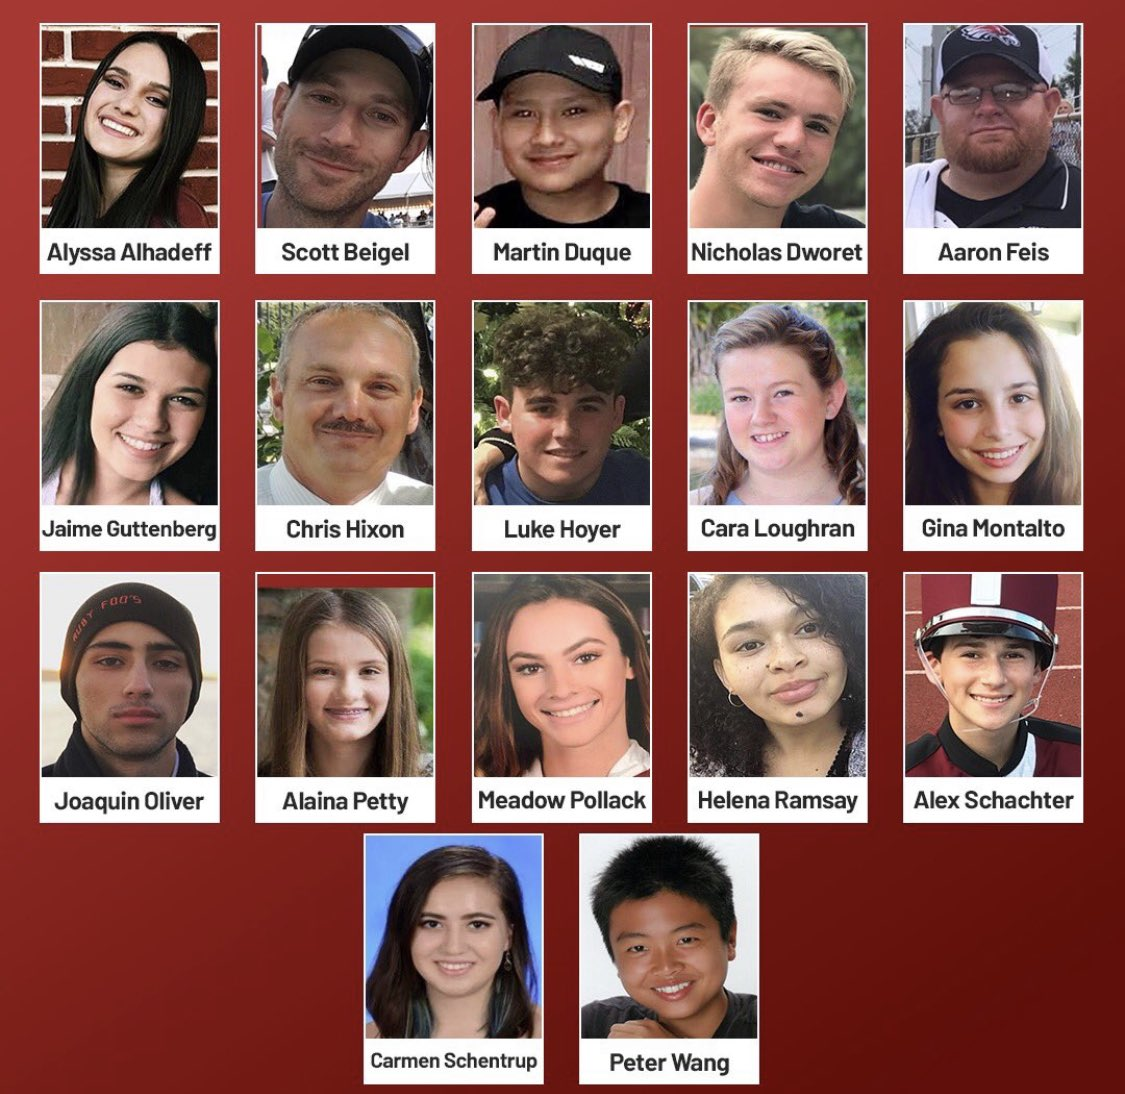 Today we remember the 17 victims who were cruelly gunned down at #MSD. We remember how the #Parkland students led historic statewide &amp; nationwide calls for action, and forced Republicans to make changes to our gun laws in Tallahassee for the first time in decades. <br>http://pic.twitter.com/GvPkIihbGU